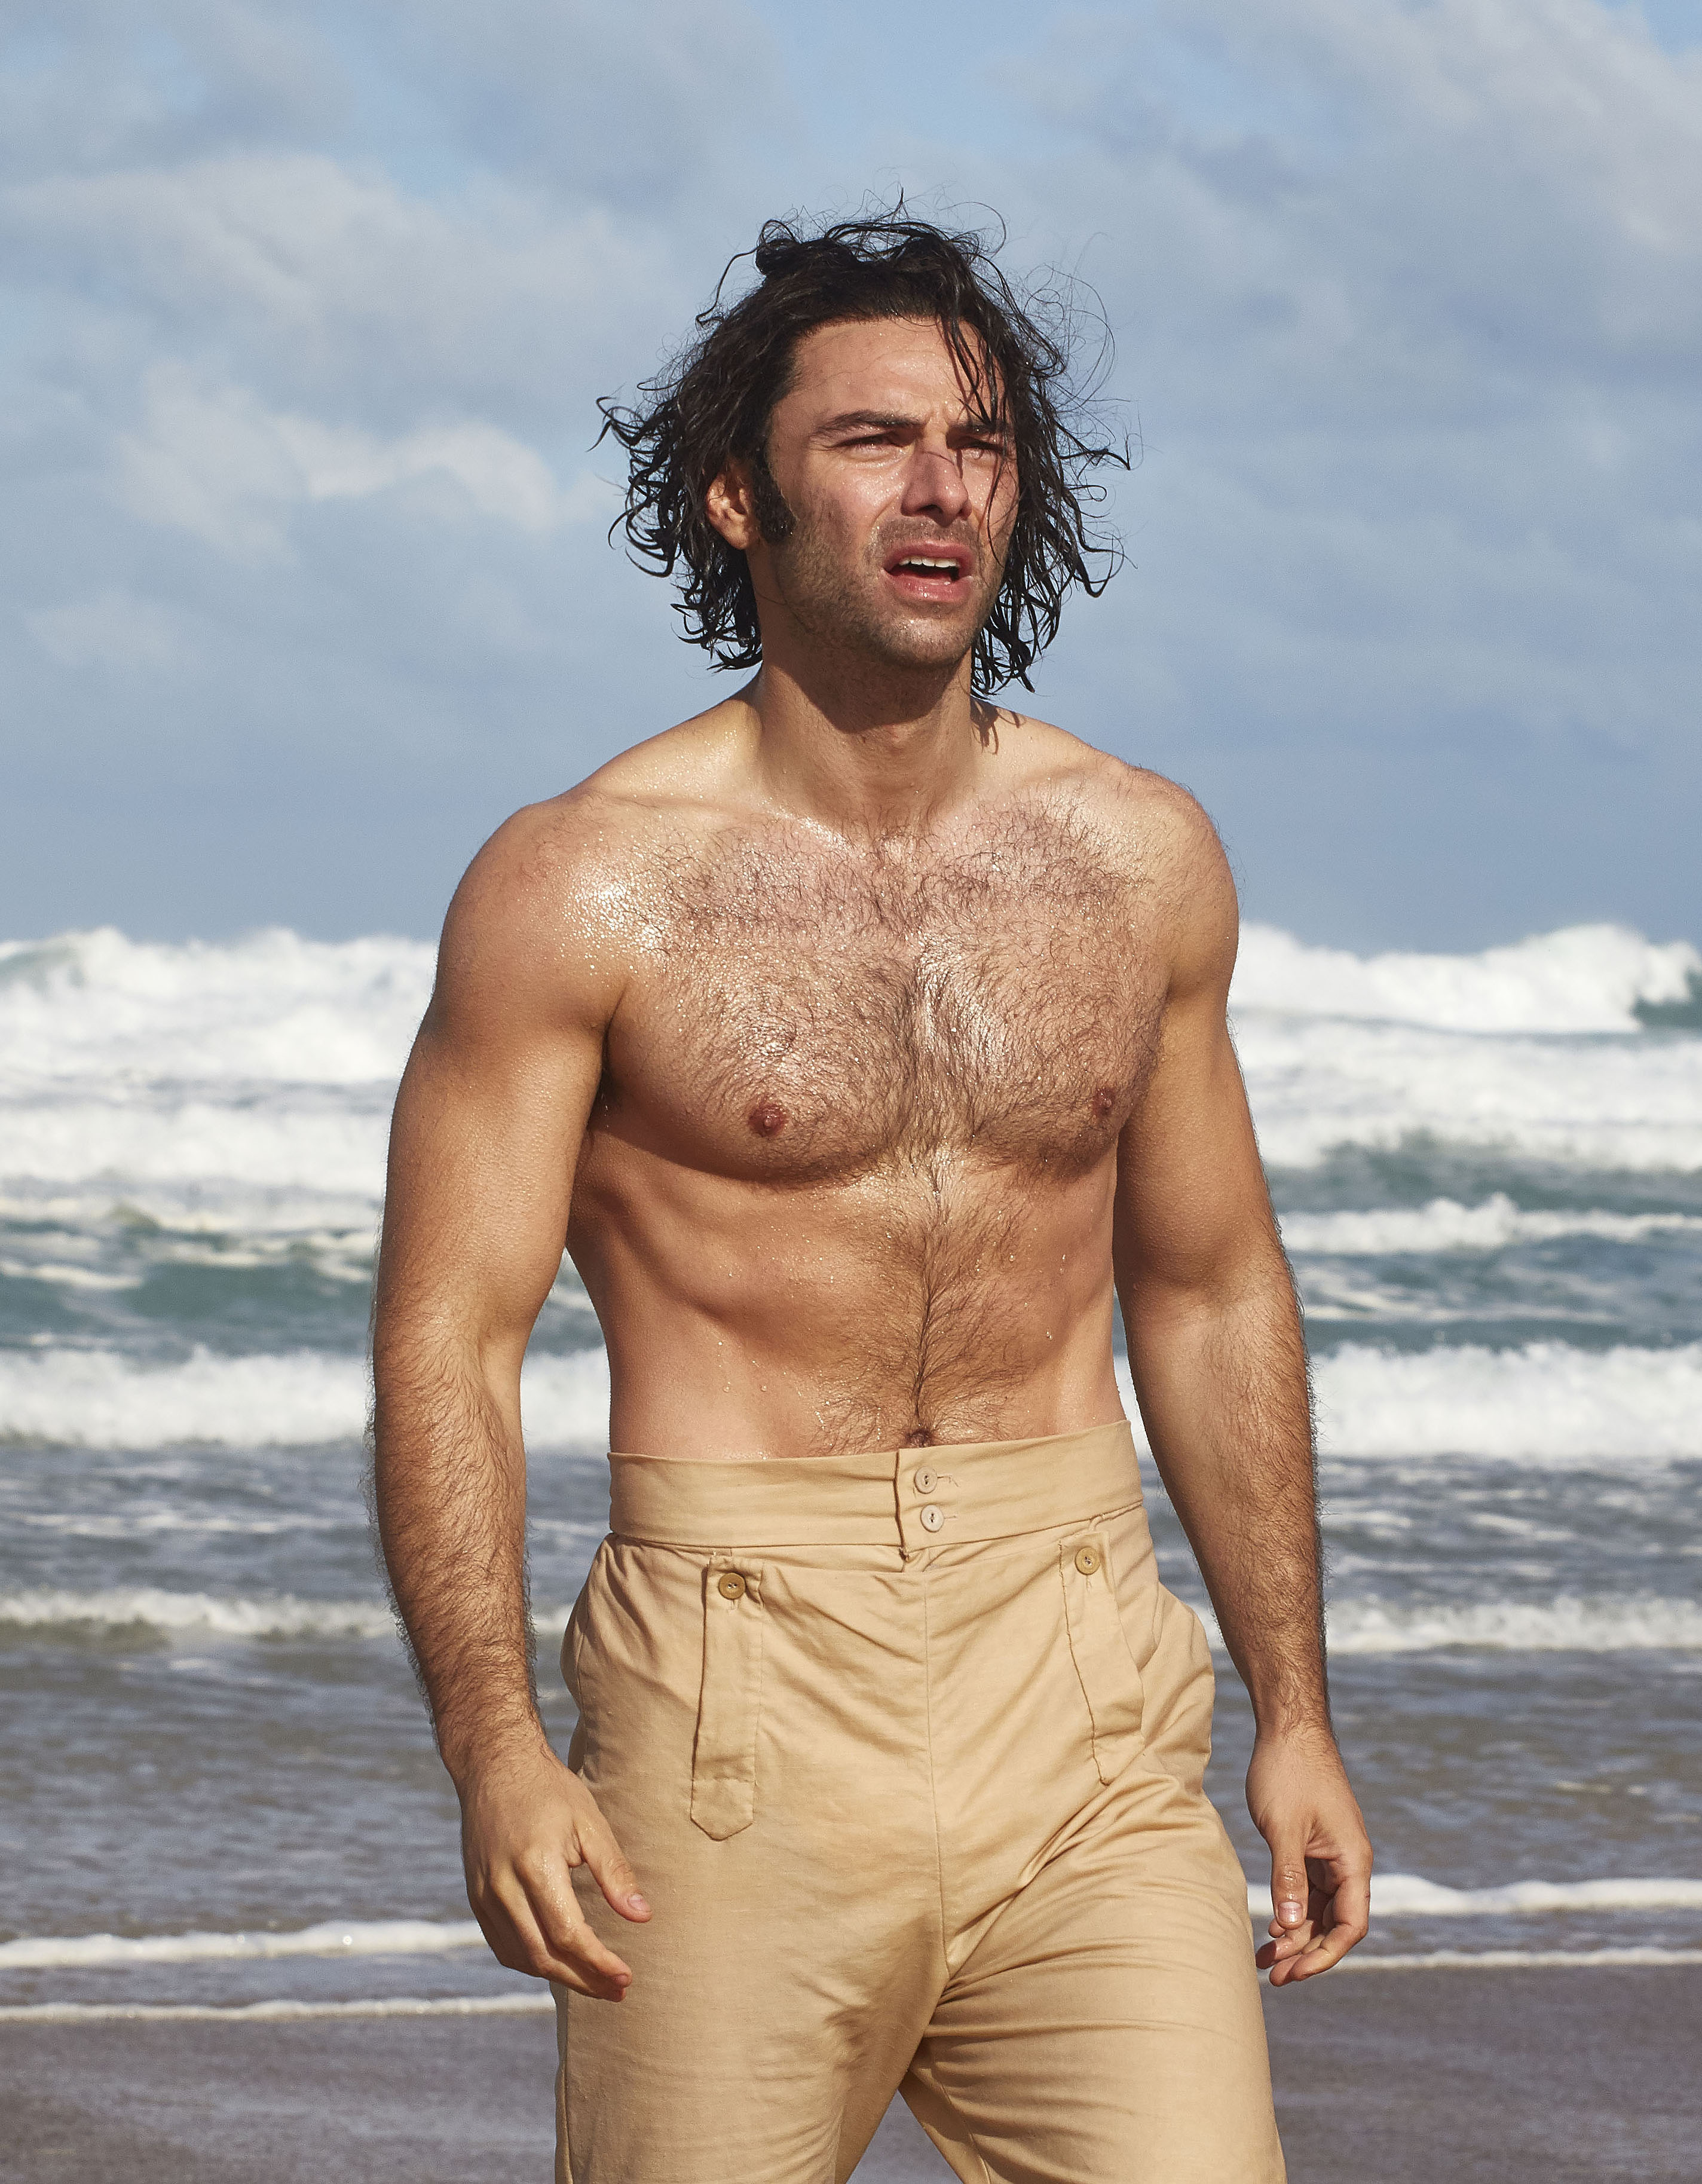 A shirtless Ross Poldark comes out of the ocean.